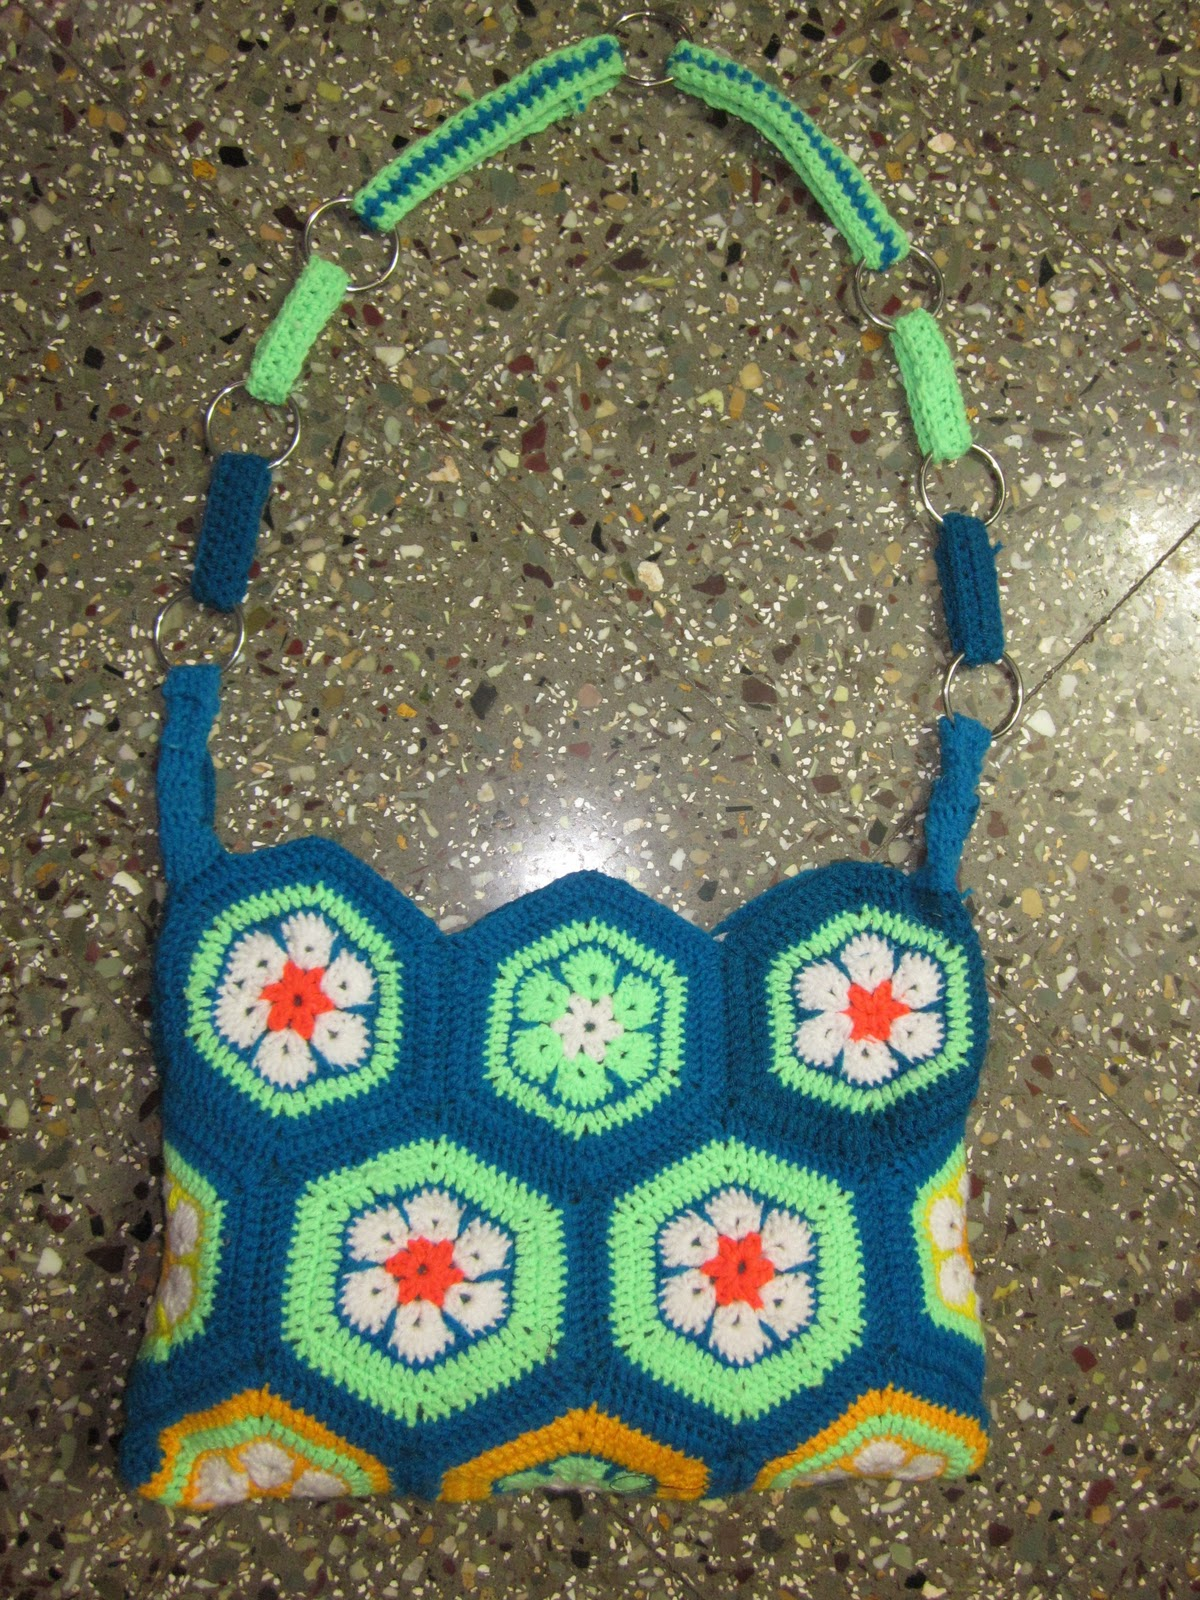 Crochet Hexagon Bag : learned to make the hexagon from here .... and here is the outcome ...